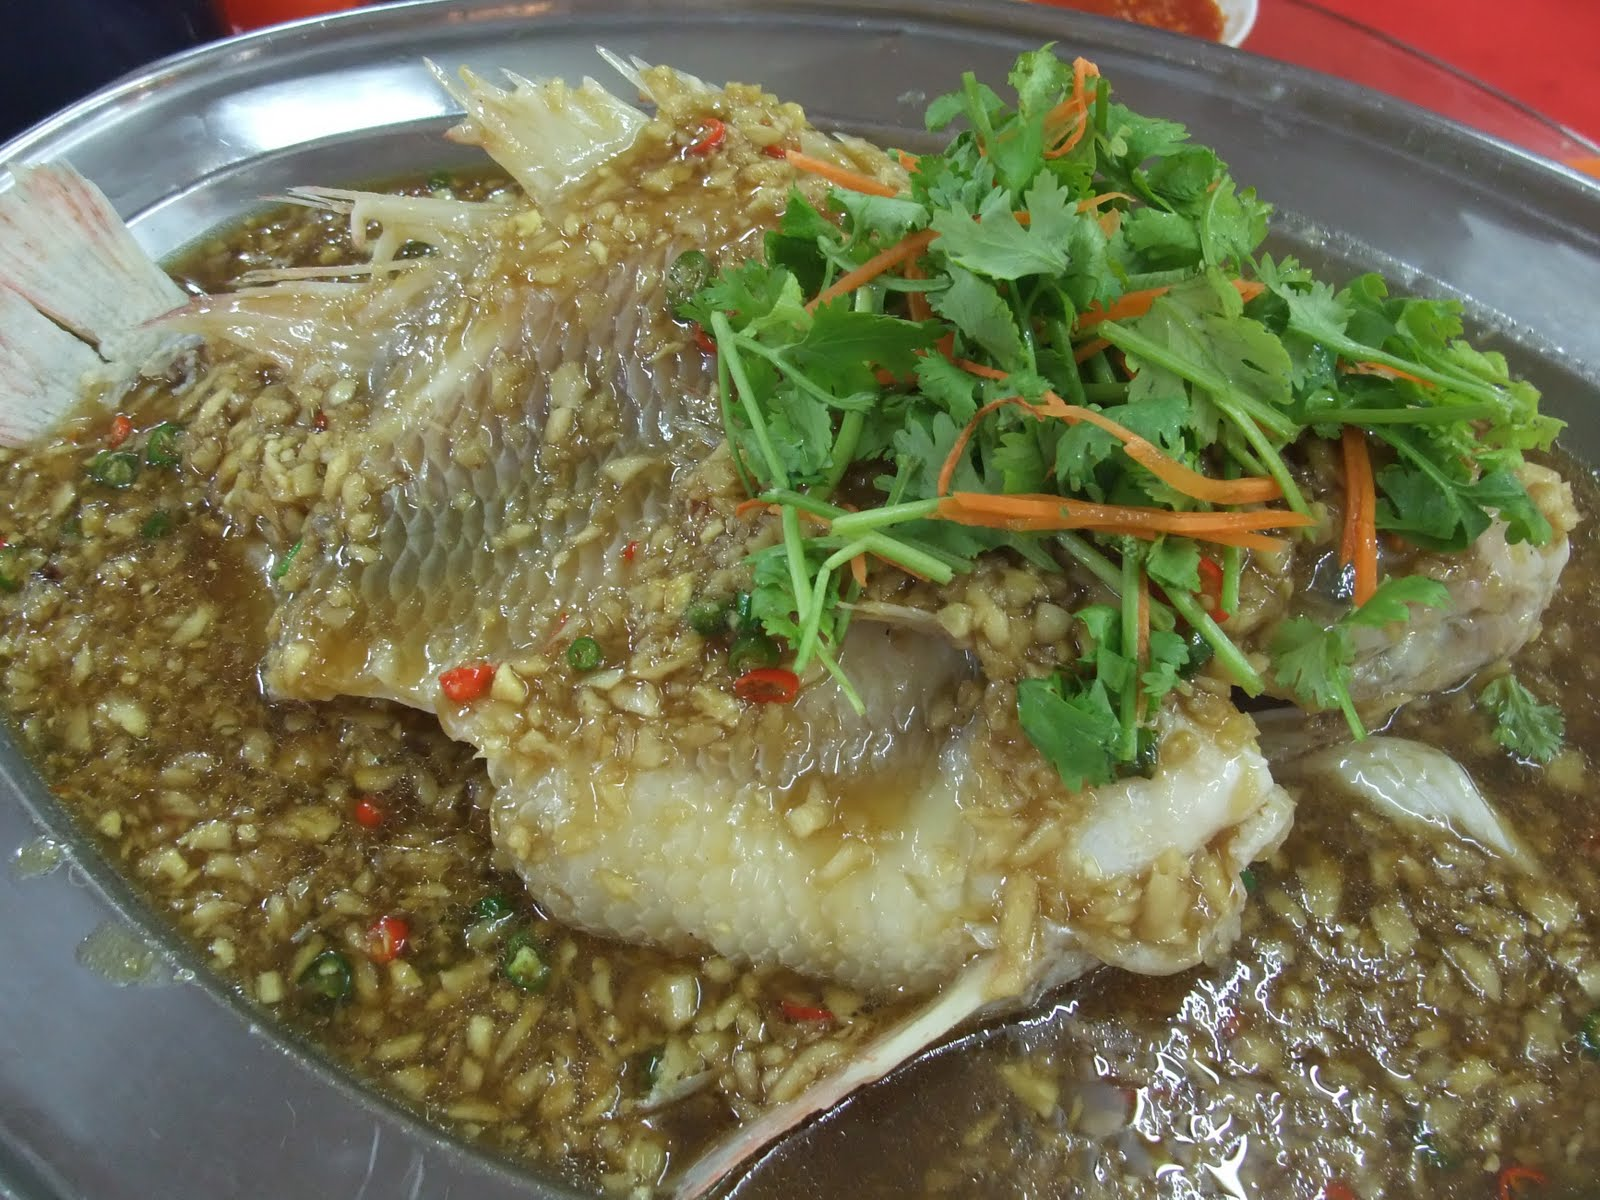 Happy happy another birthday cake restoran beng kee for What do tilapia fish eat